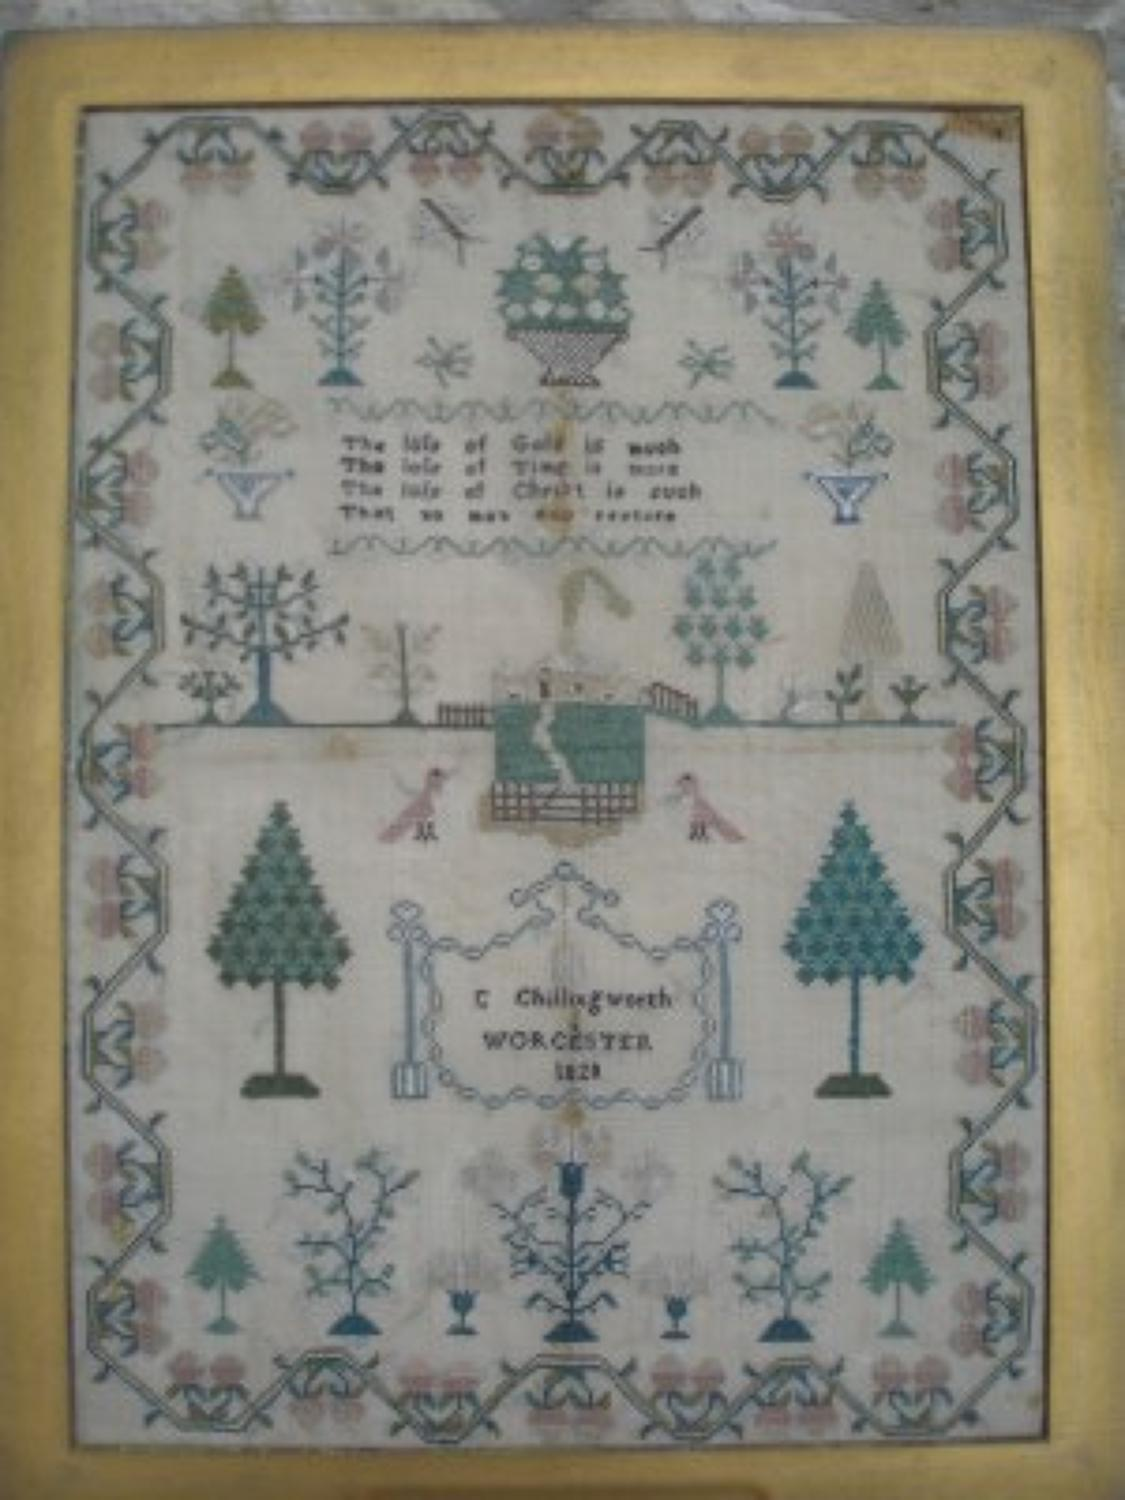 Sampler - Worcester 1828 C Chillingworth